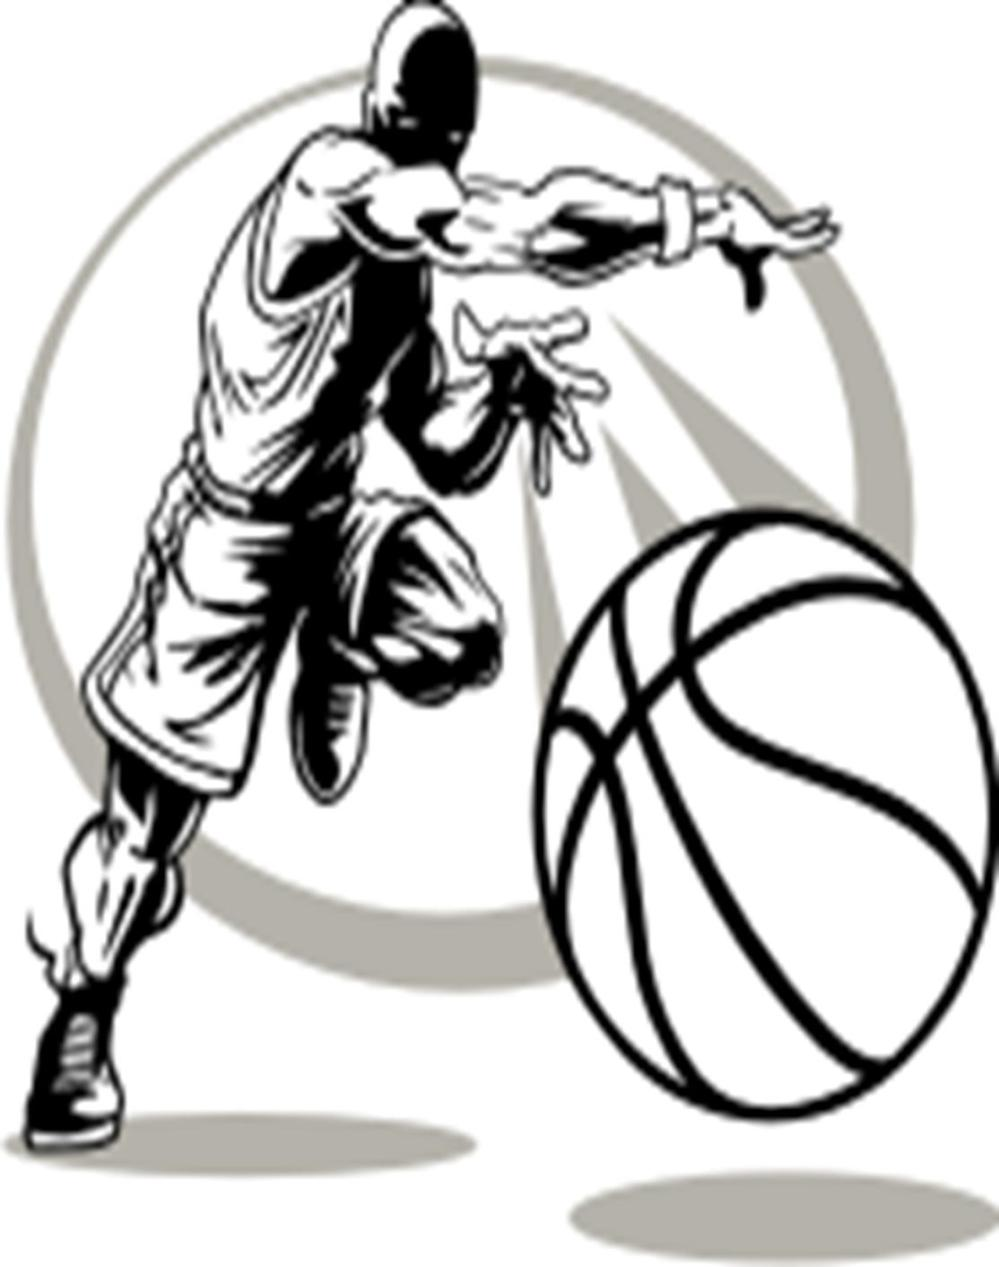 medium resolution of kid basketball player clipart free images